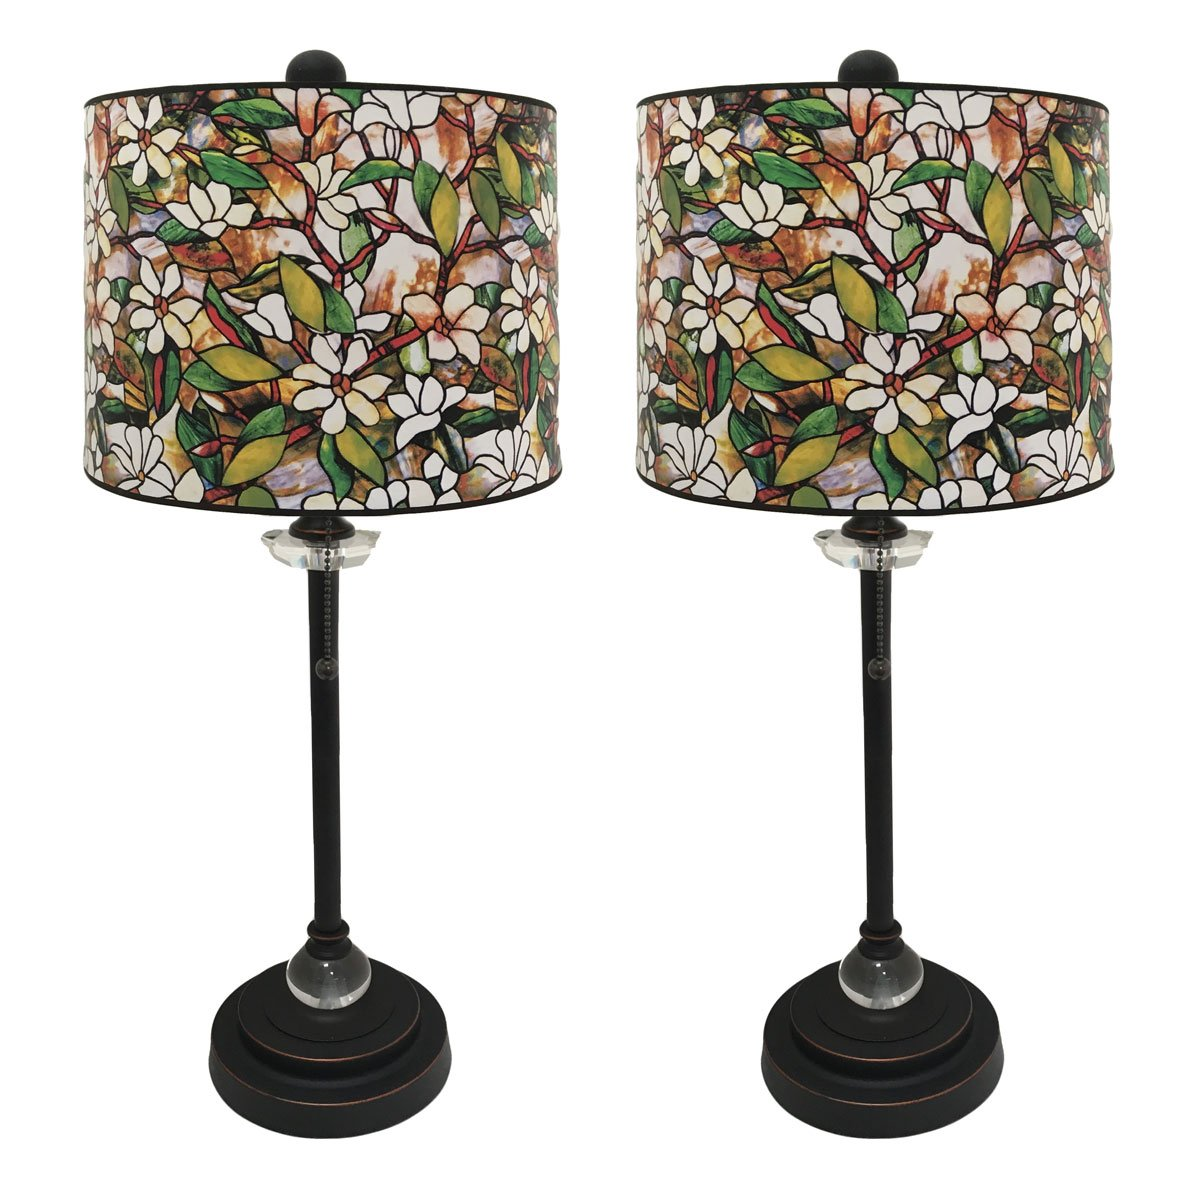 Royal Designs 28'' Crystal and Oil Rub Bronze Buffet Lamp with Magnolia Stained Glass Design Hard Back Lamp Shade, Set of 2